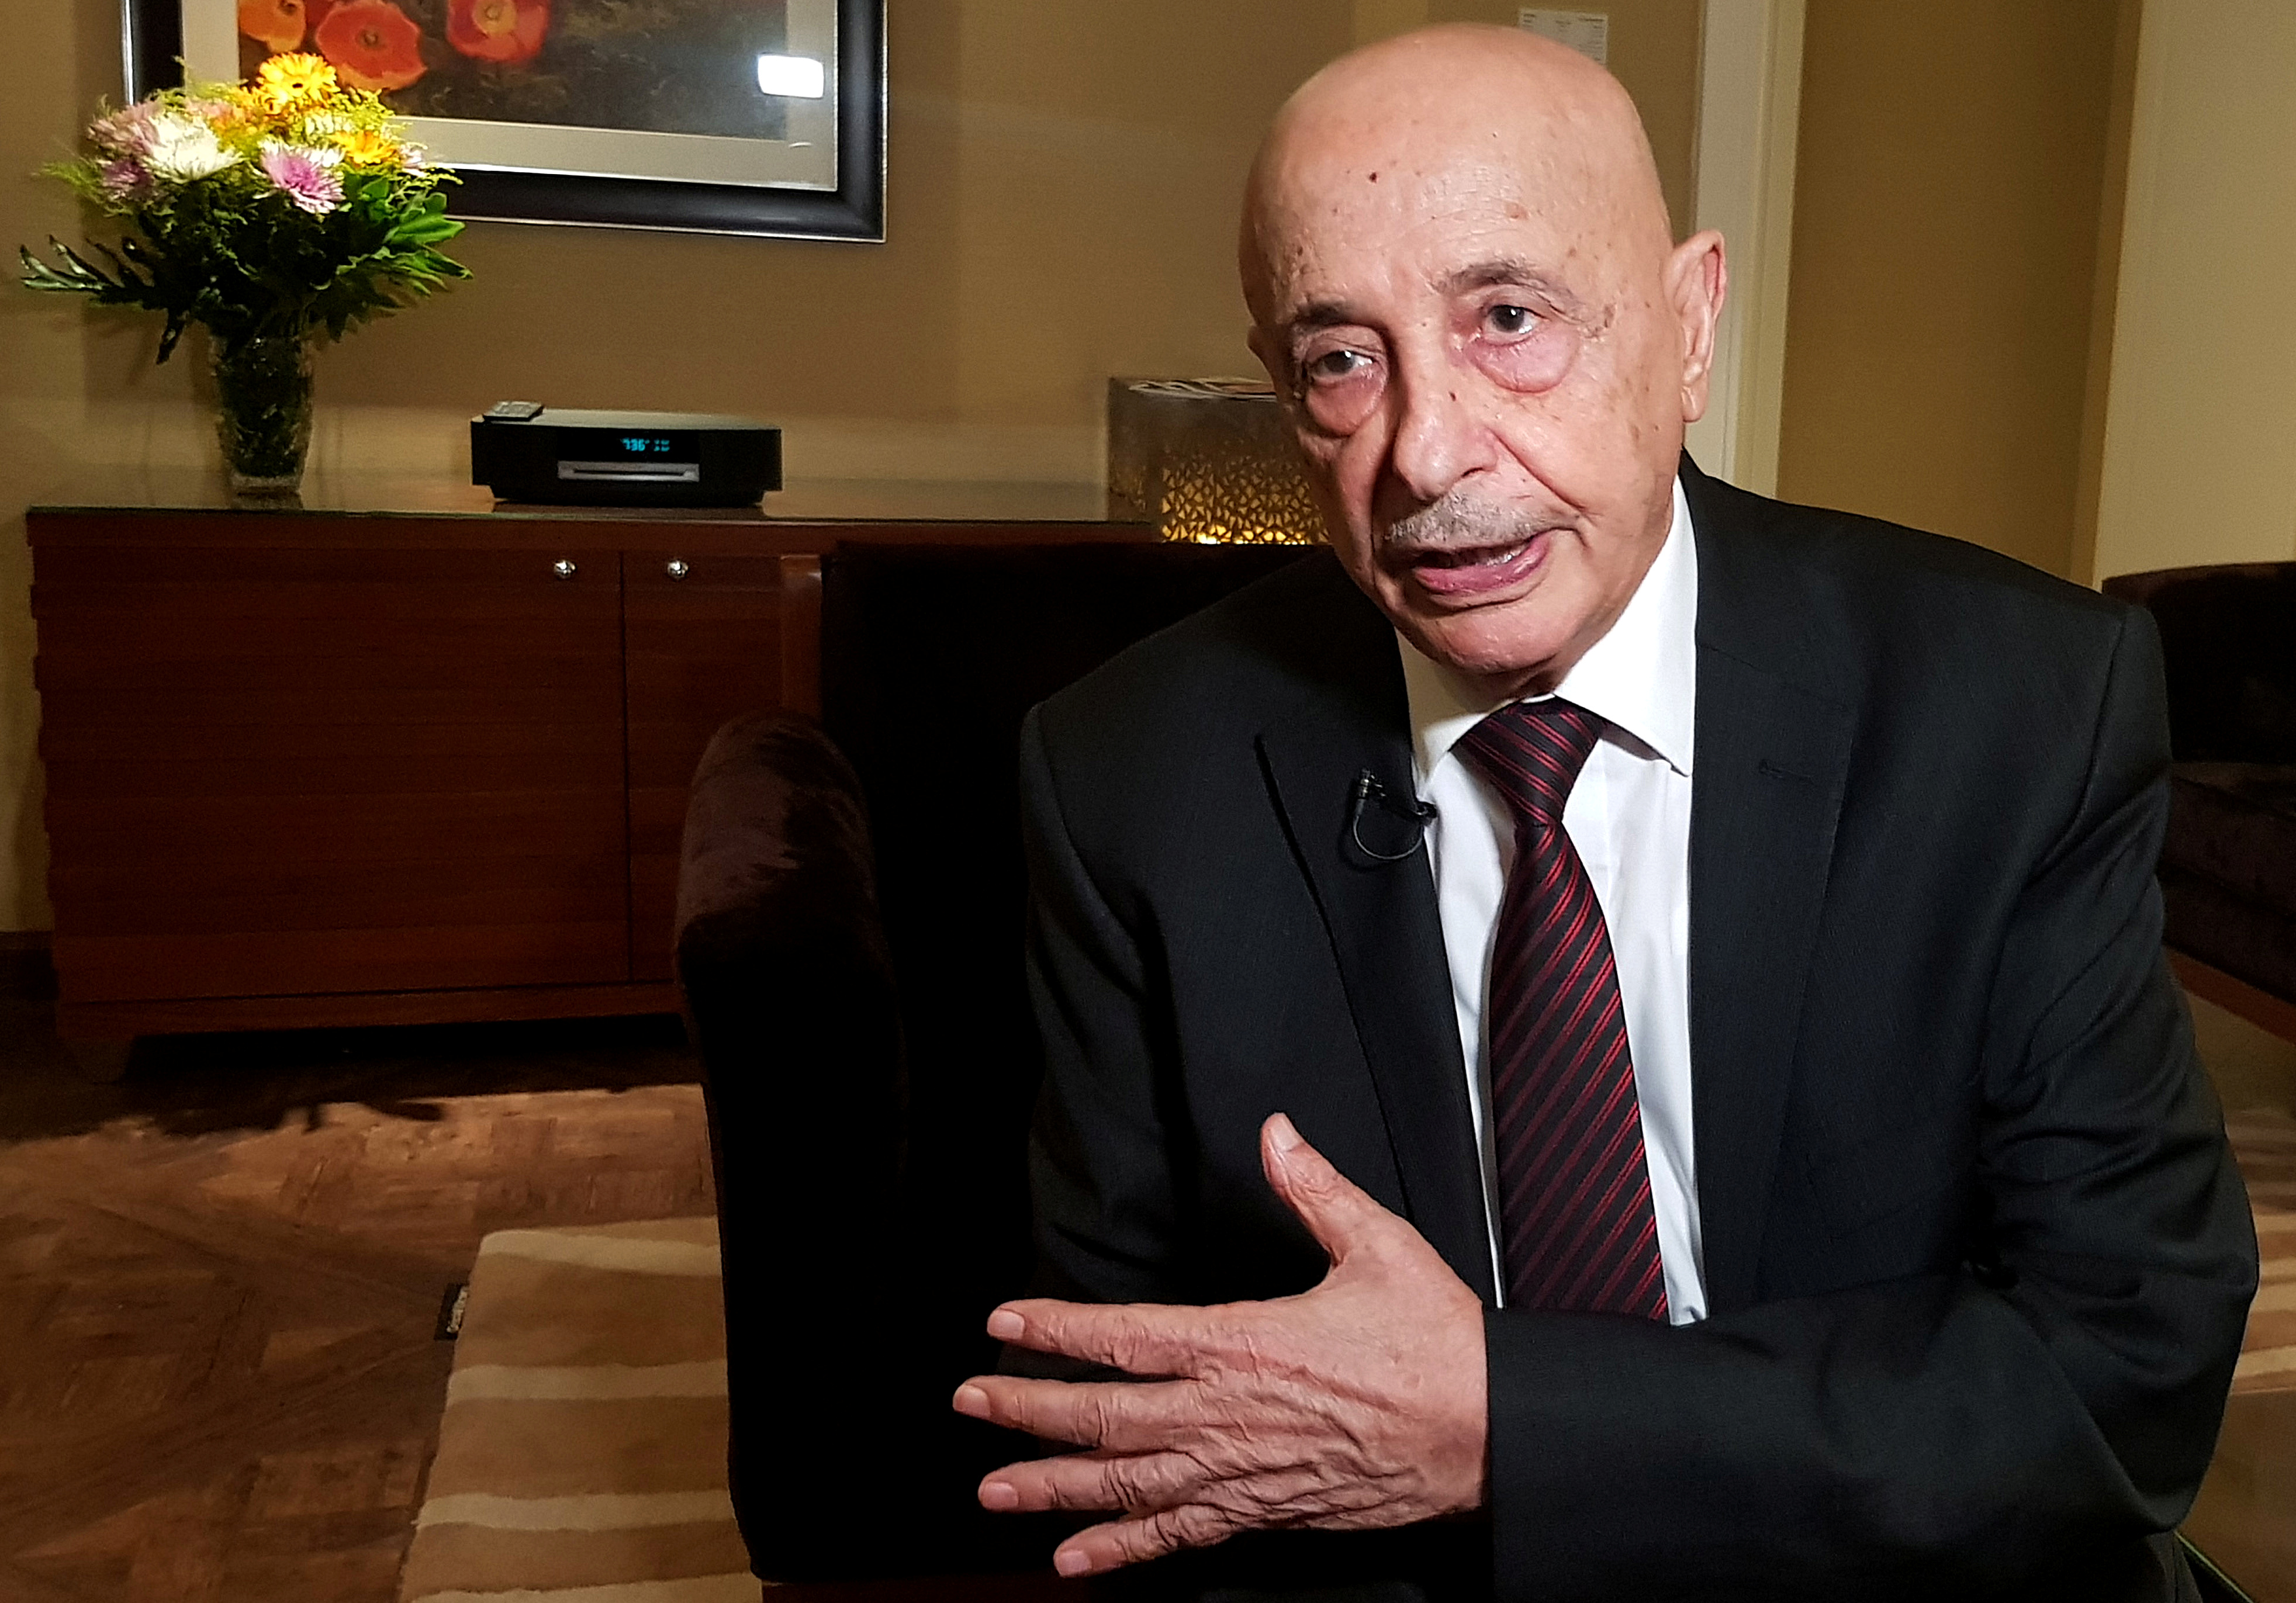 Aguila Saleh, Head of East Libya Parliament, speaks during an interview with Reuters in Cairo, Egypt June 12, 2019. REUTERS/Mahmoud Mourad